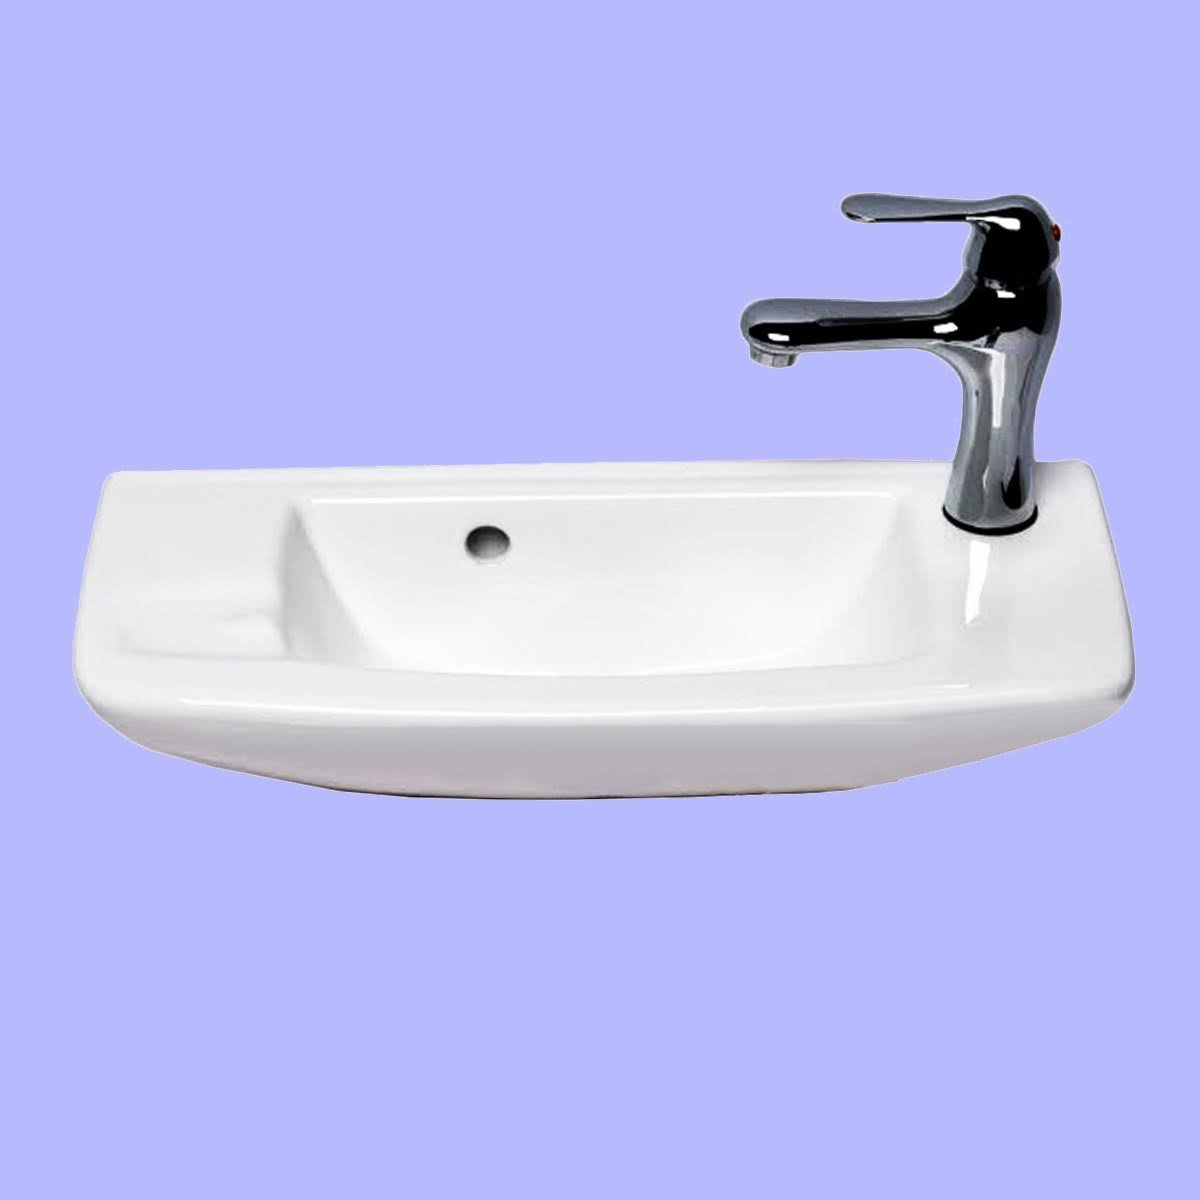 Wall Mount Sink WITH FAUCET AND DRAIN White Bathroom Overflow ...